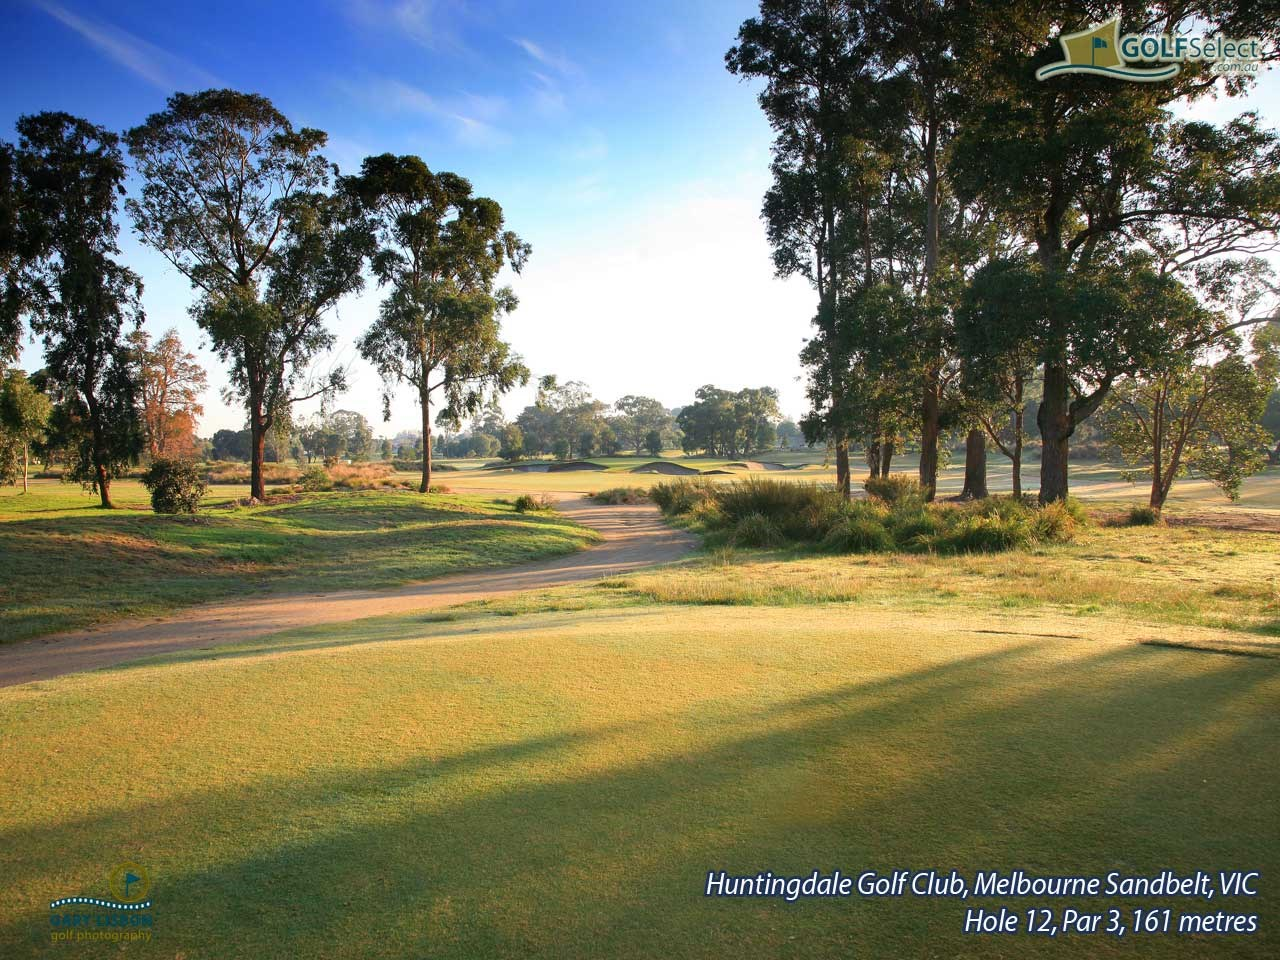 Huntingdale Golf Club Hole 12, Par 3, 161 metres